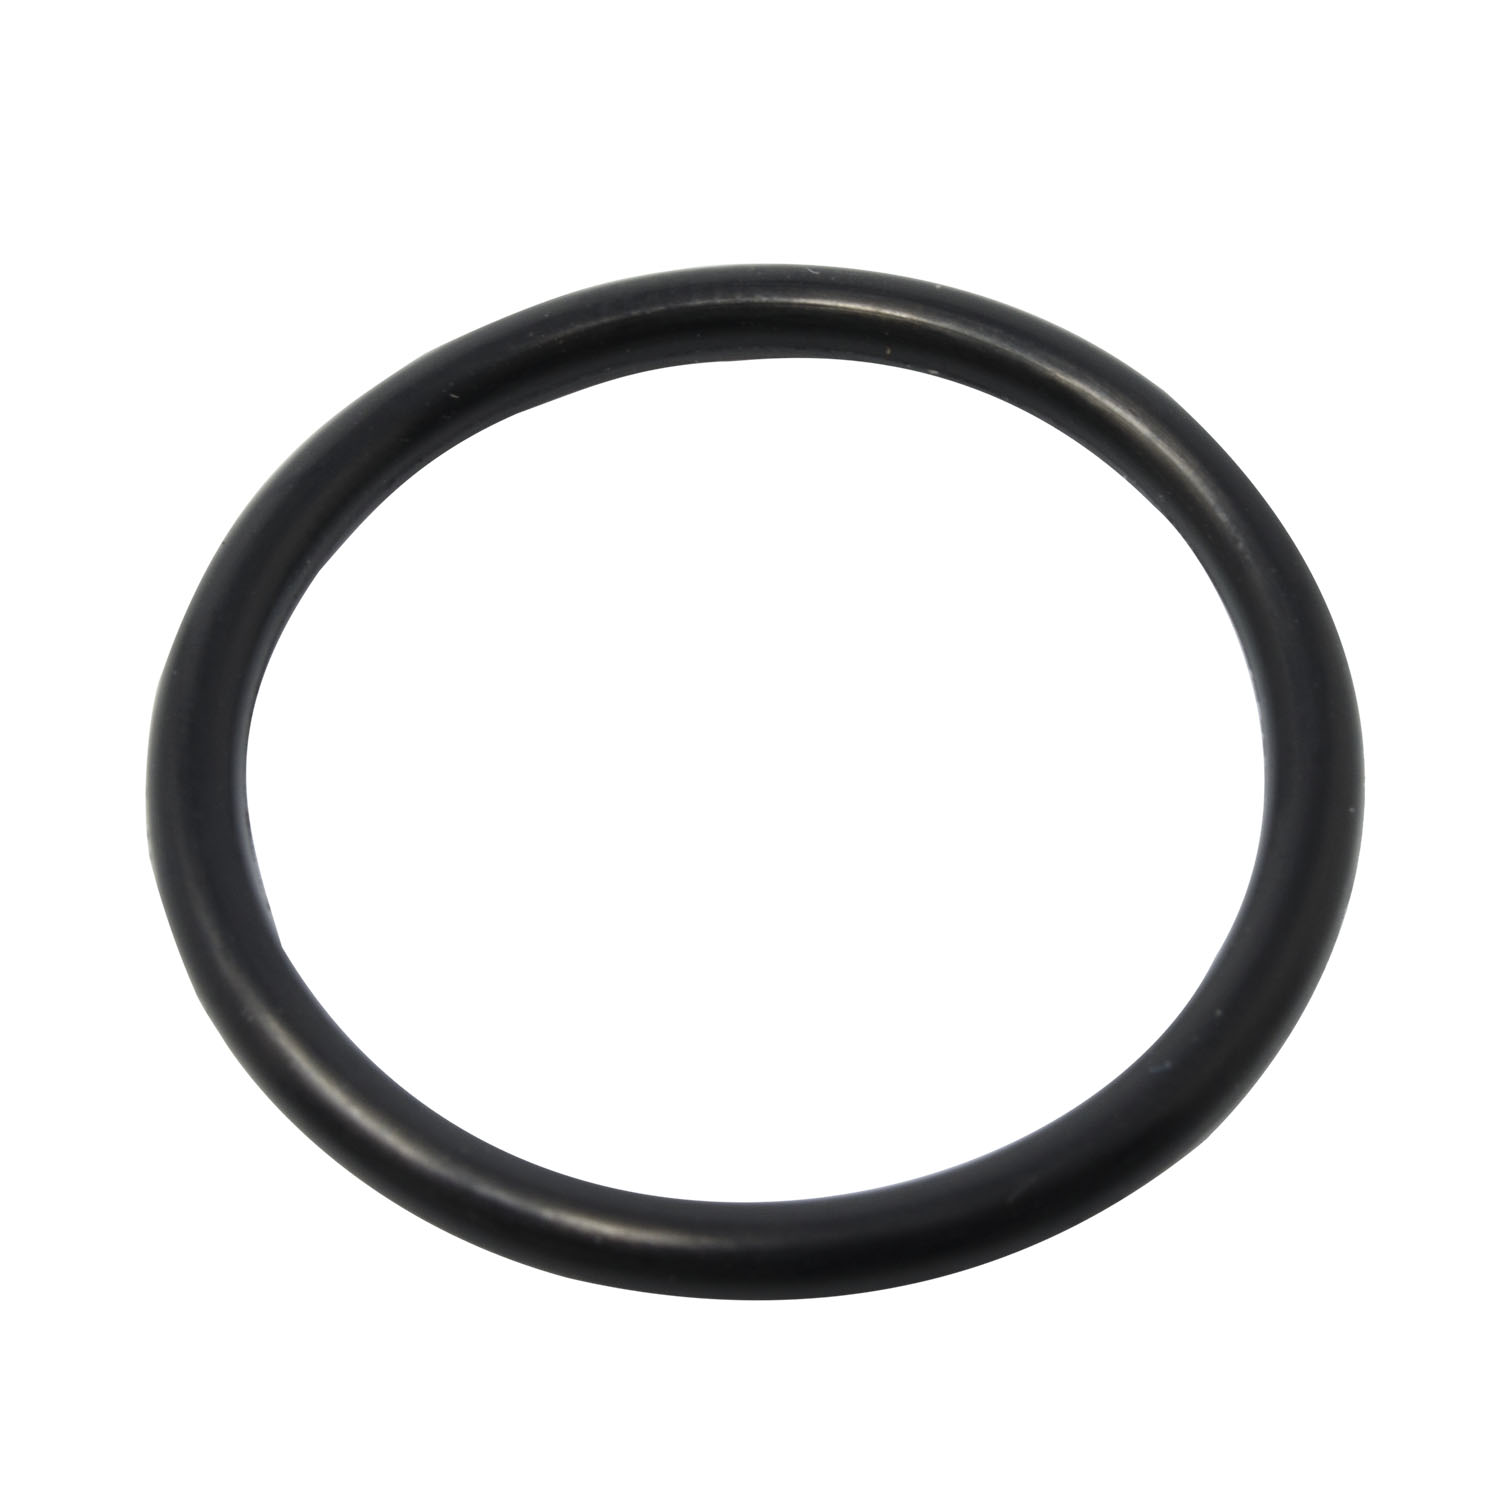 O-Rings For SAE (O-Ring Boss; ORB) Thread; Sizes #4, #6